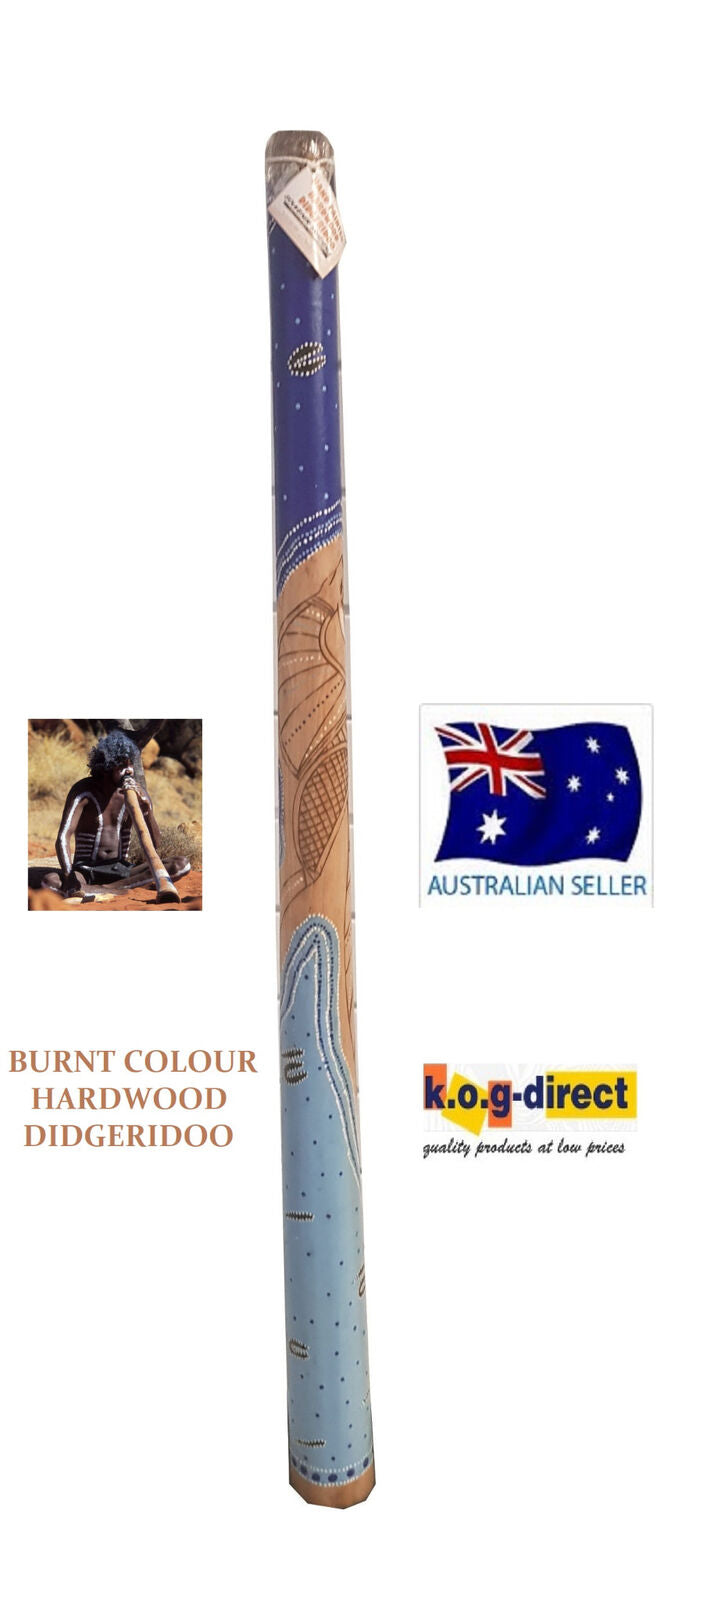 DIDGERIDOO BURNT COLOUR HARDWOOD 130CM ABORIGINAL STYLE BEAUTIFULLY HAND PAINTED NEW BL